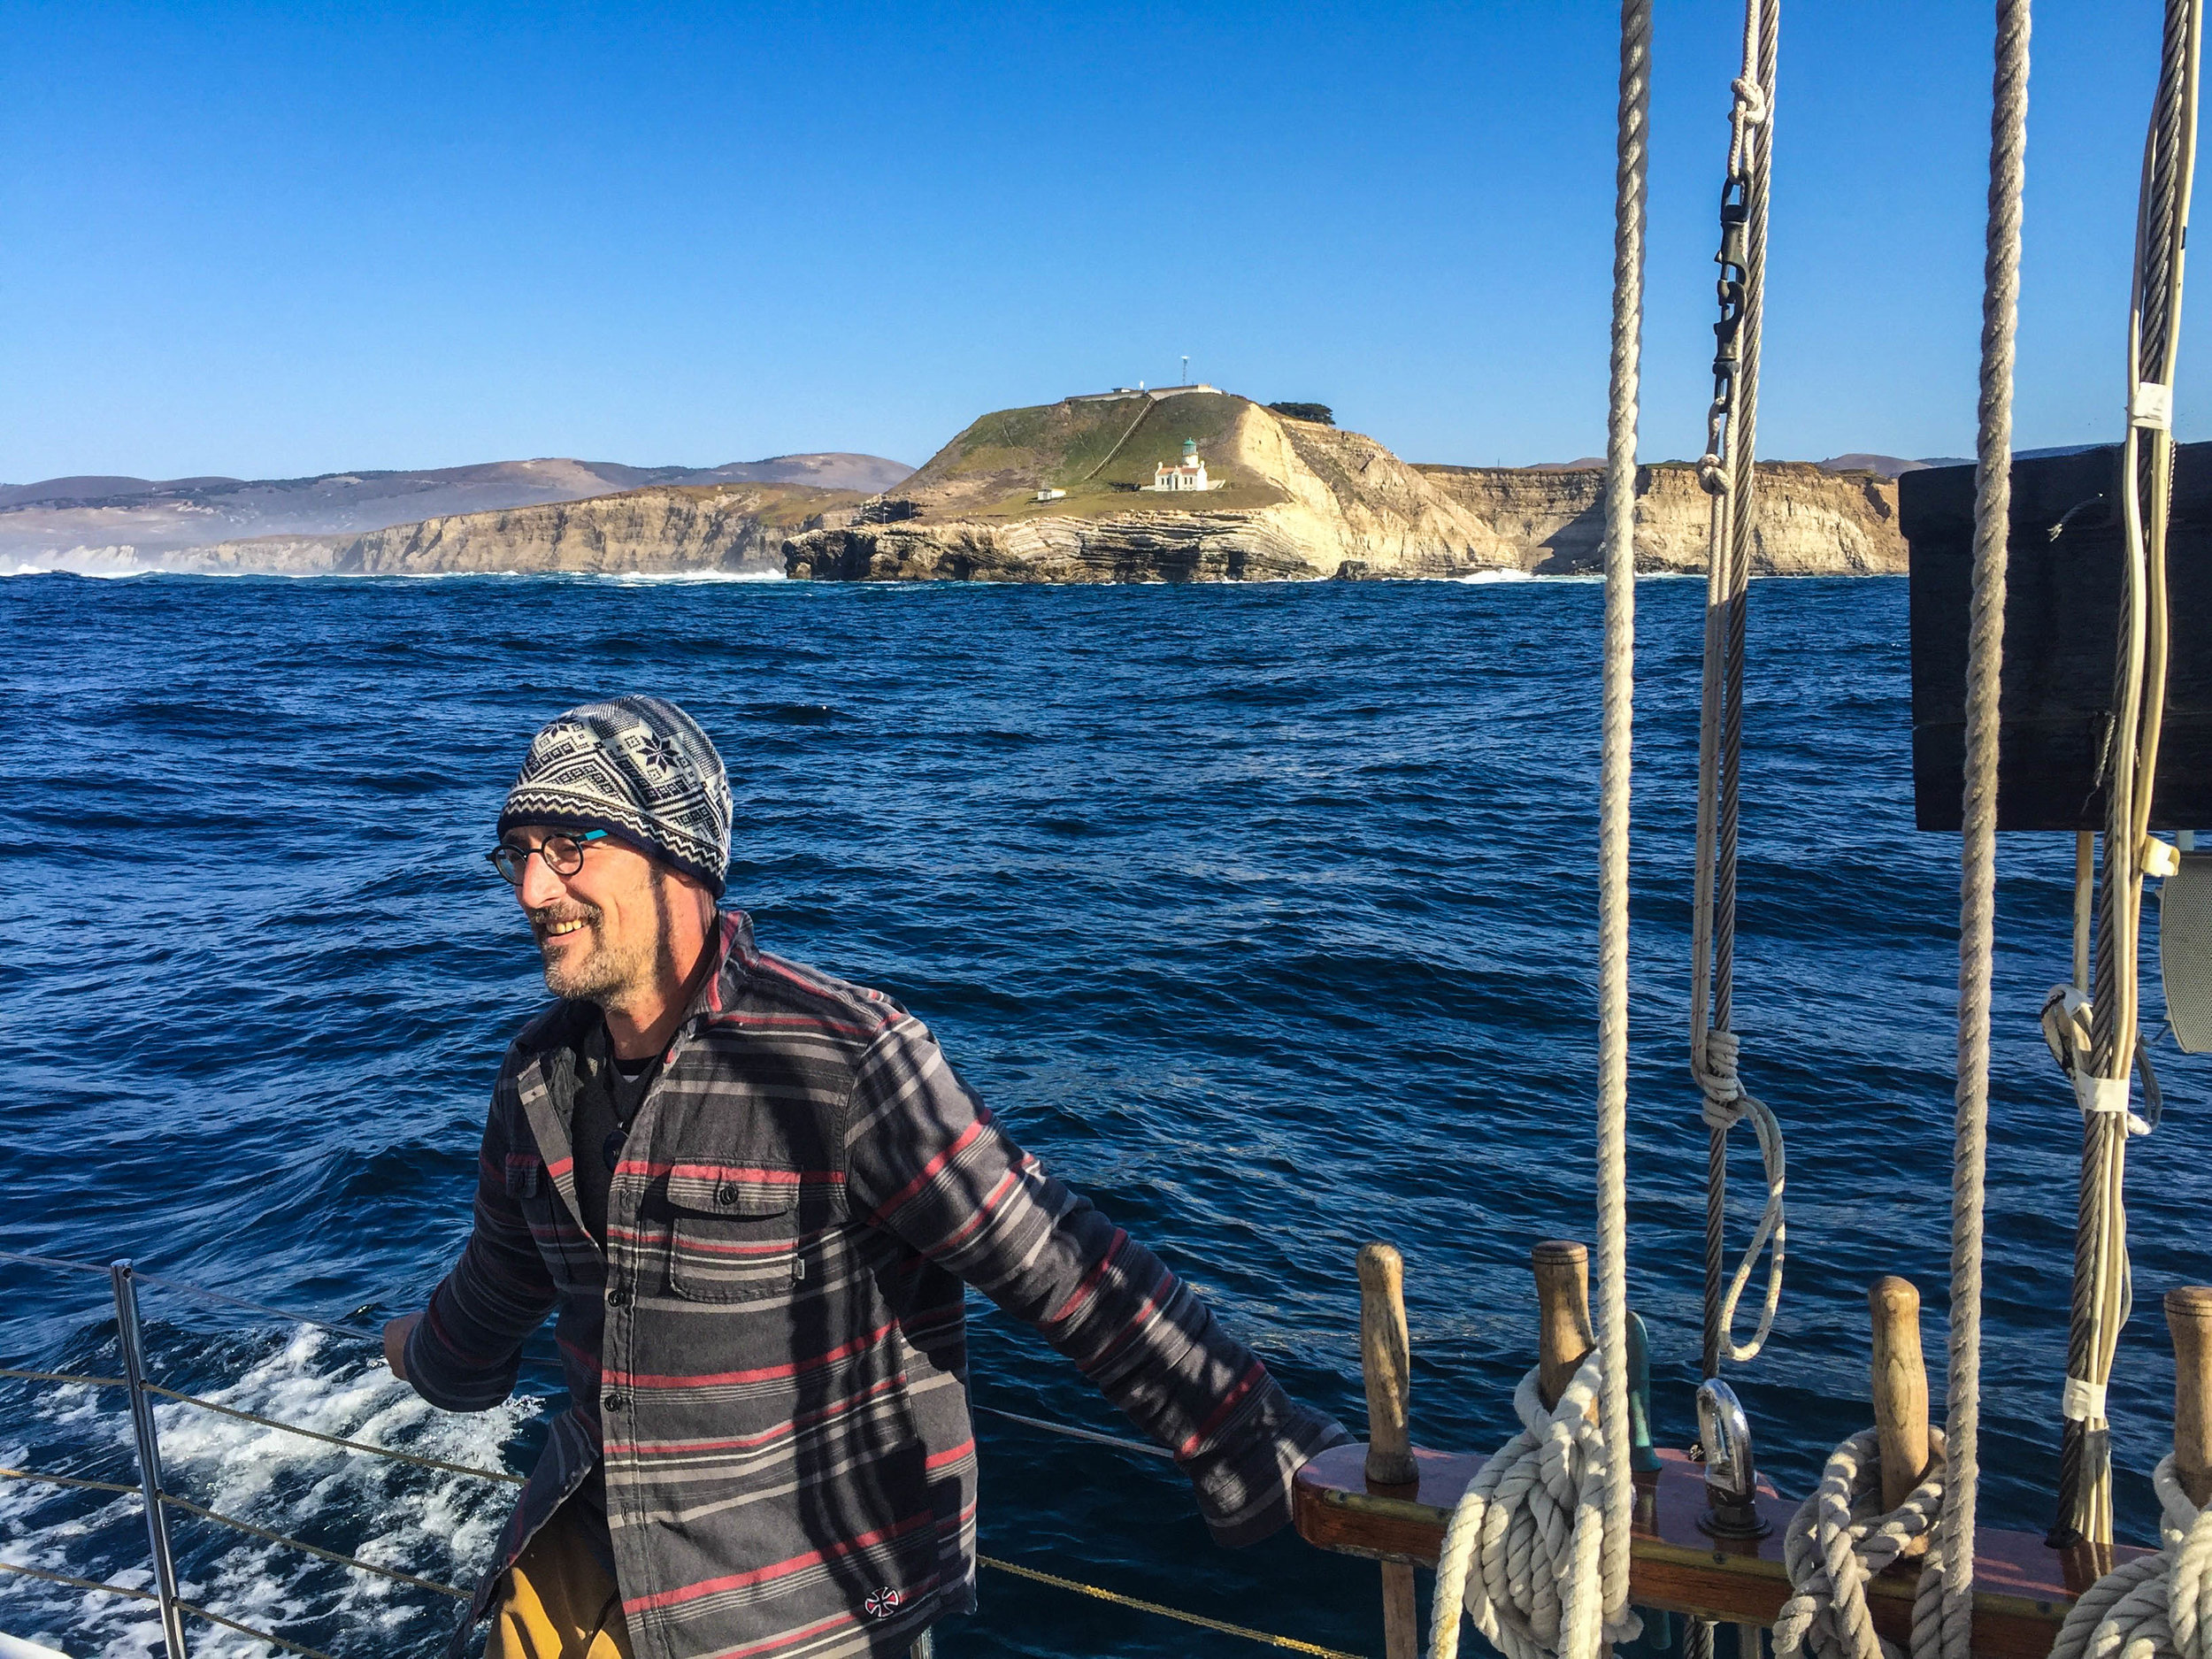 David Robert Johnson (aka Chef DR Jones) aboard the Freda B, Farallones Islands